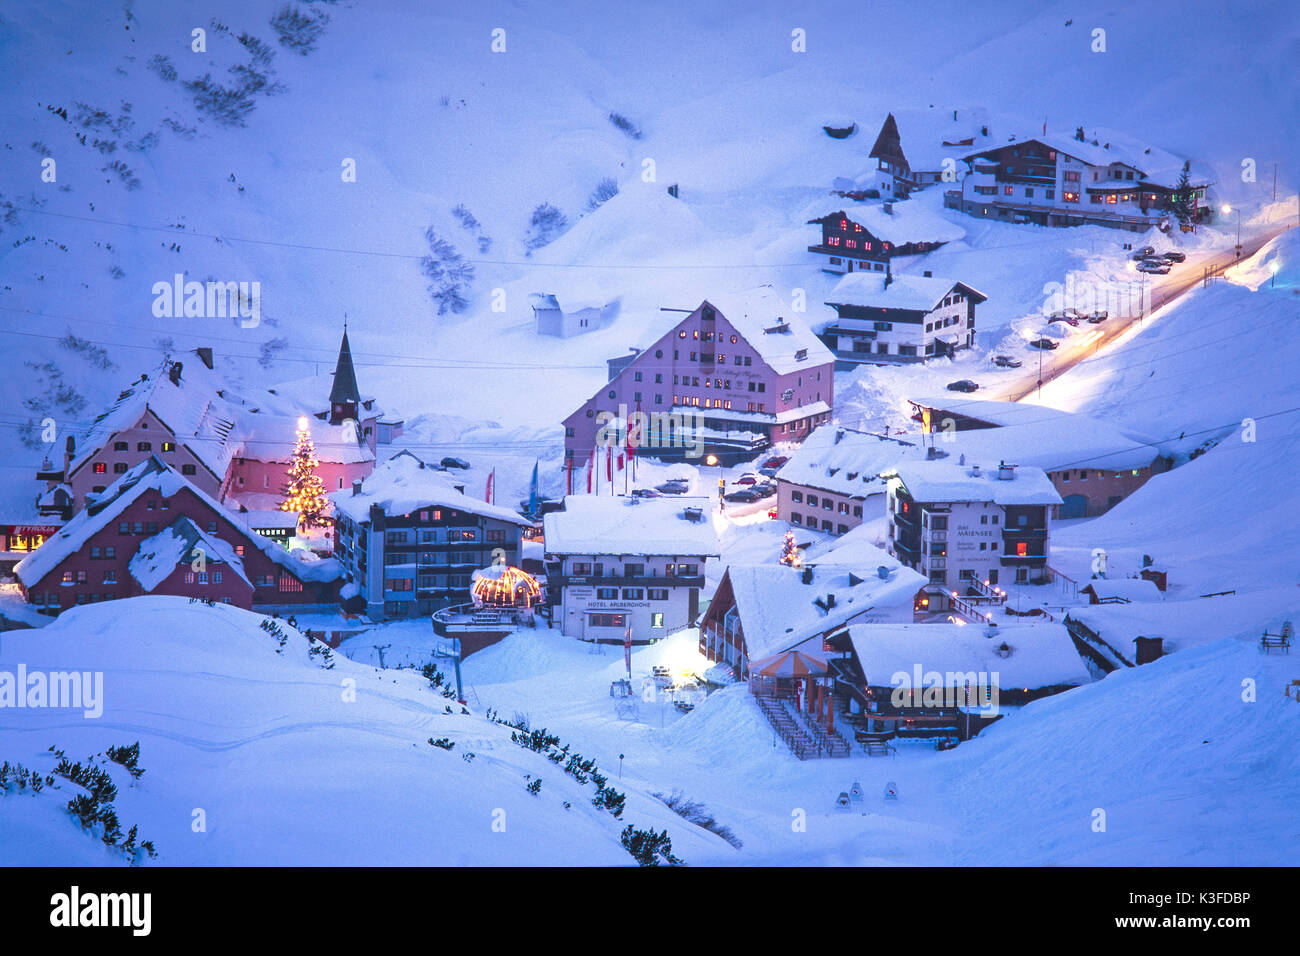 St. Christoph at the mountain Arl to the yule tide - Stock Image